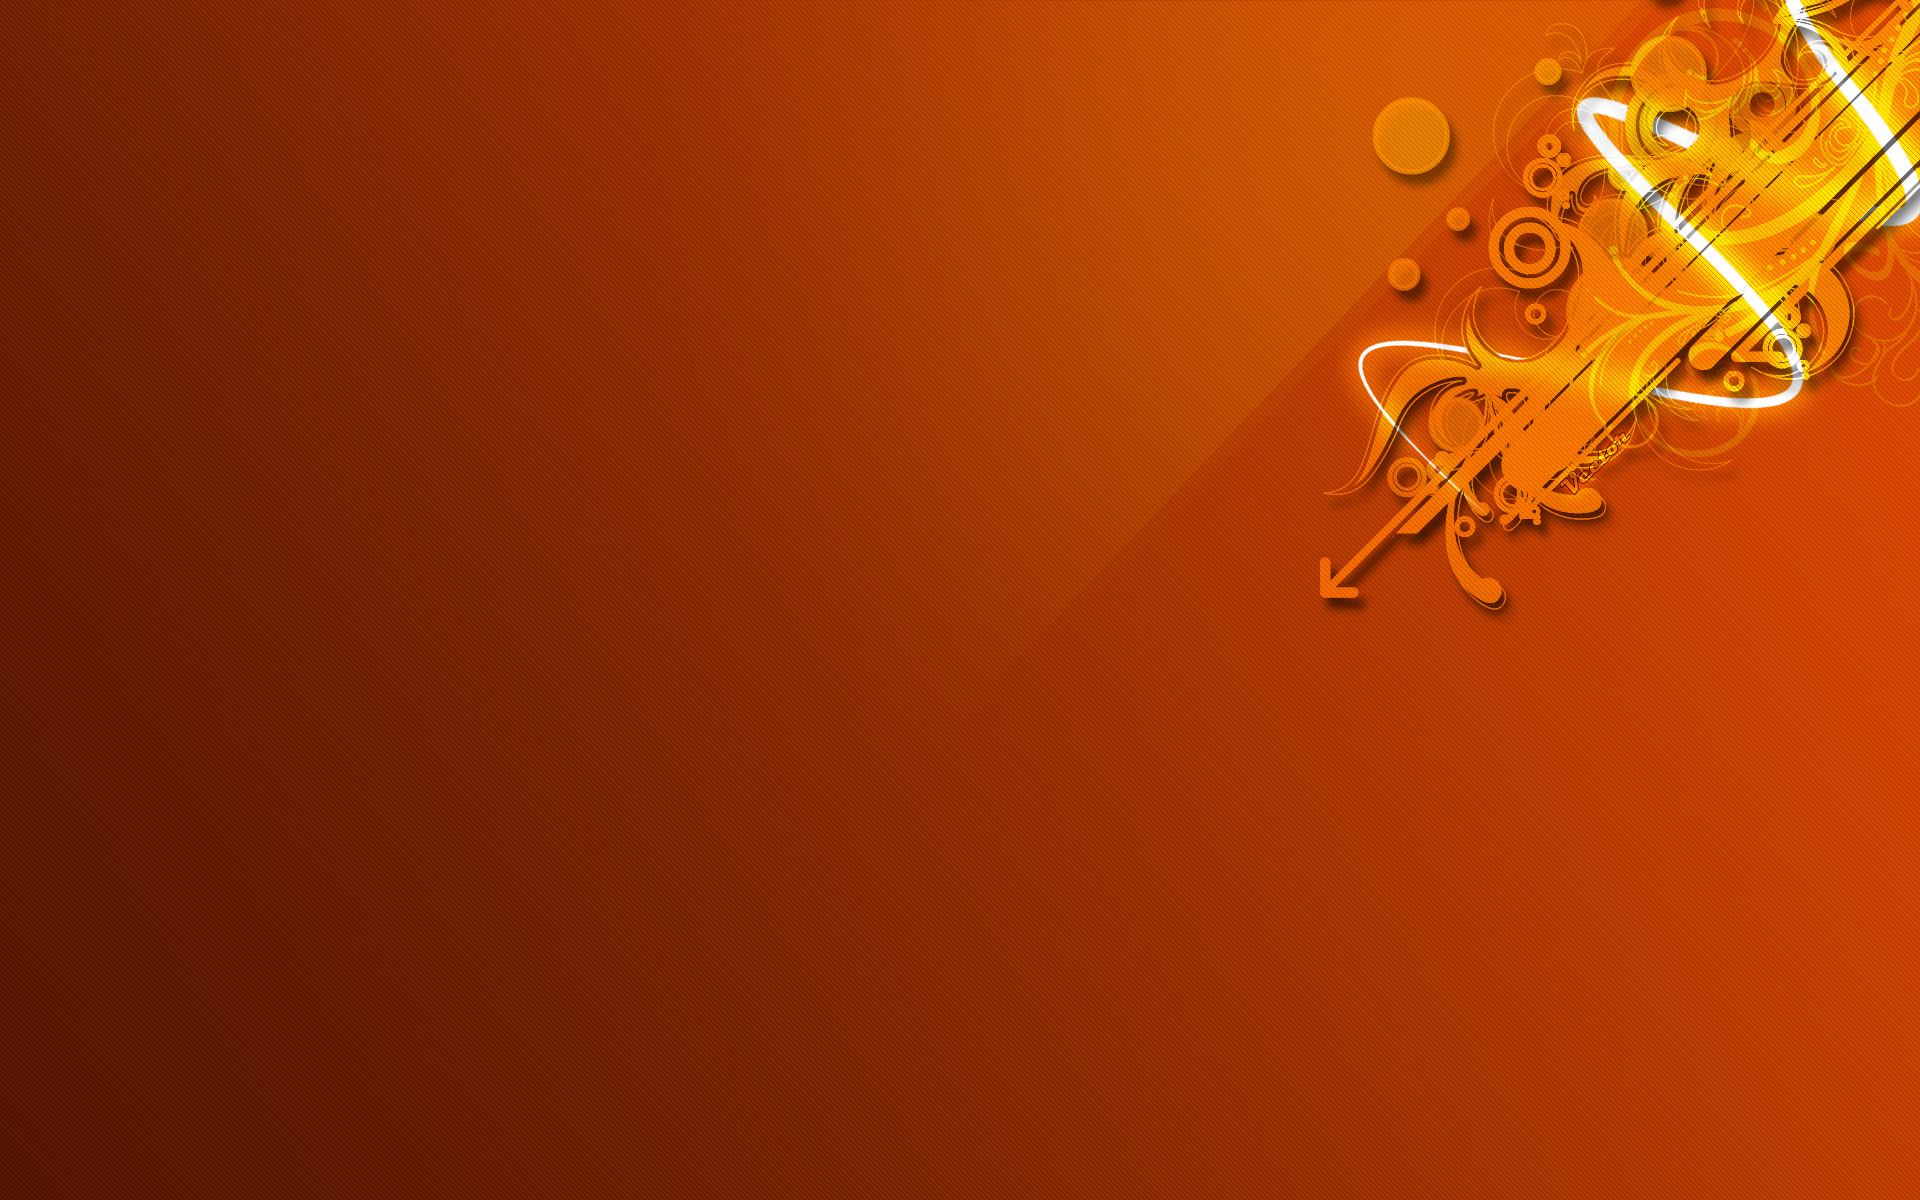 Wallpaper Orange Design : Orange design wallpaper